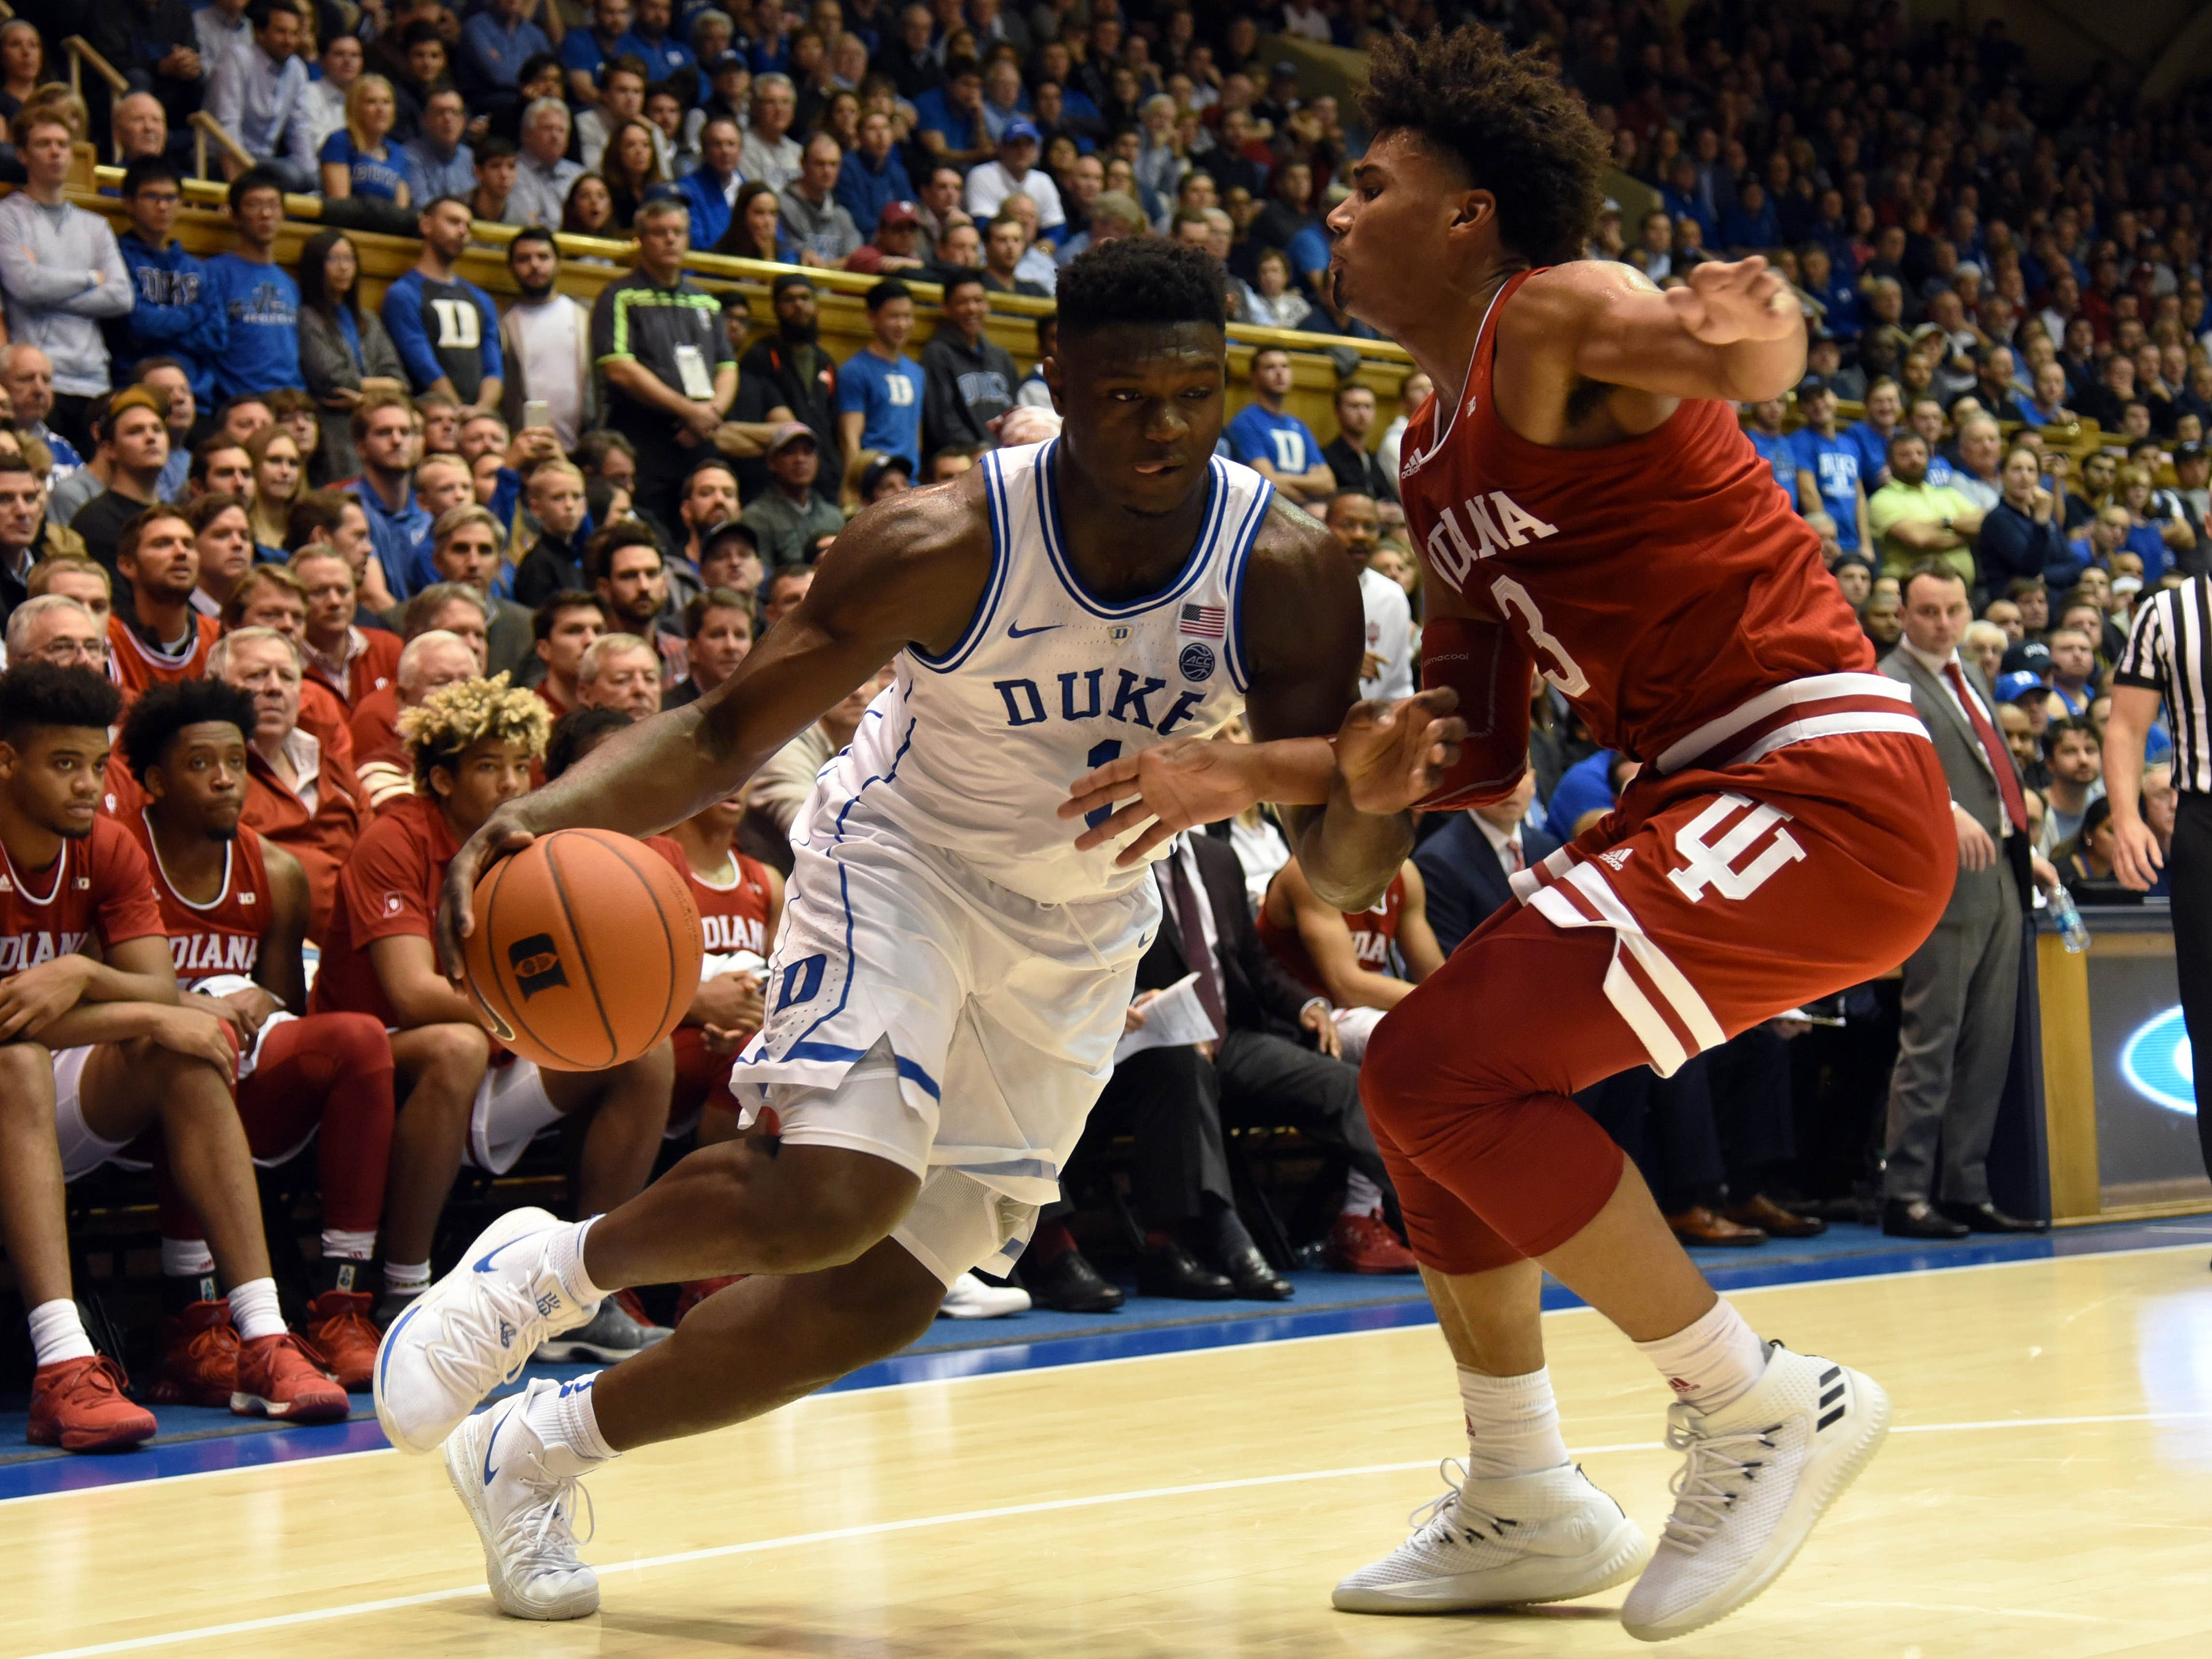 Nov 27, 2018; Durham, NC, USA; Duke Blue Devils forward Zion Williamson (1) drives to the basket past Indiana Hoosiers forward Justin Smith (3) during the first half at Cameron Indoor Stadium.